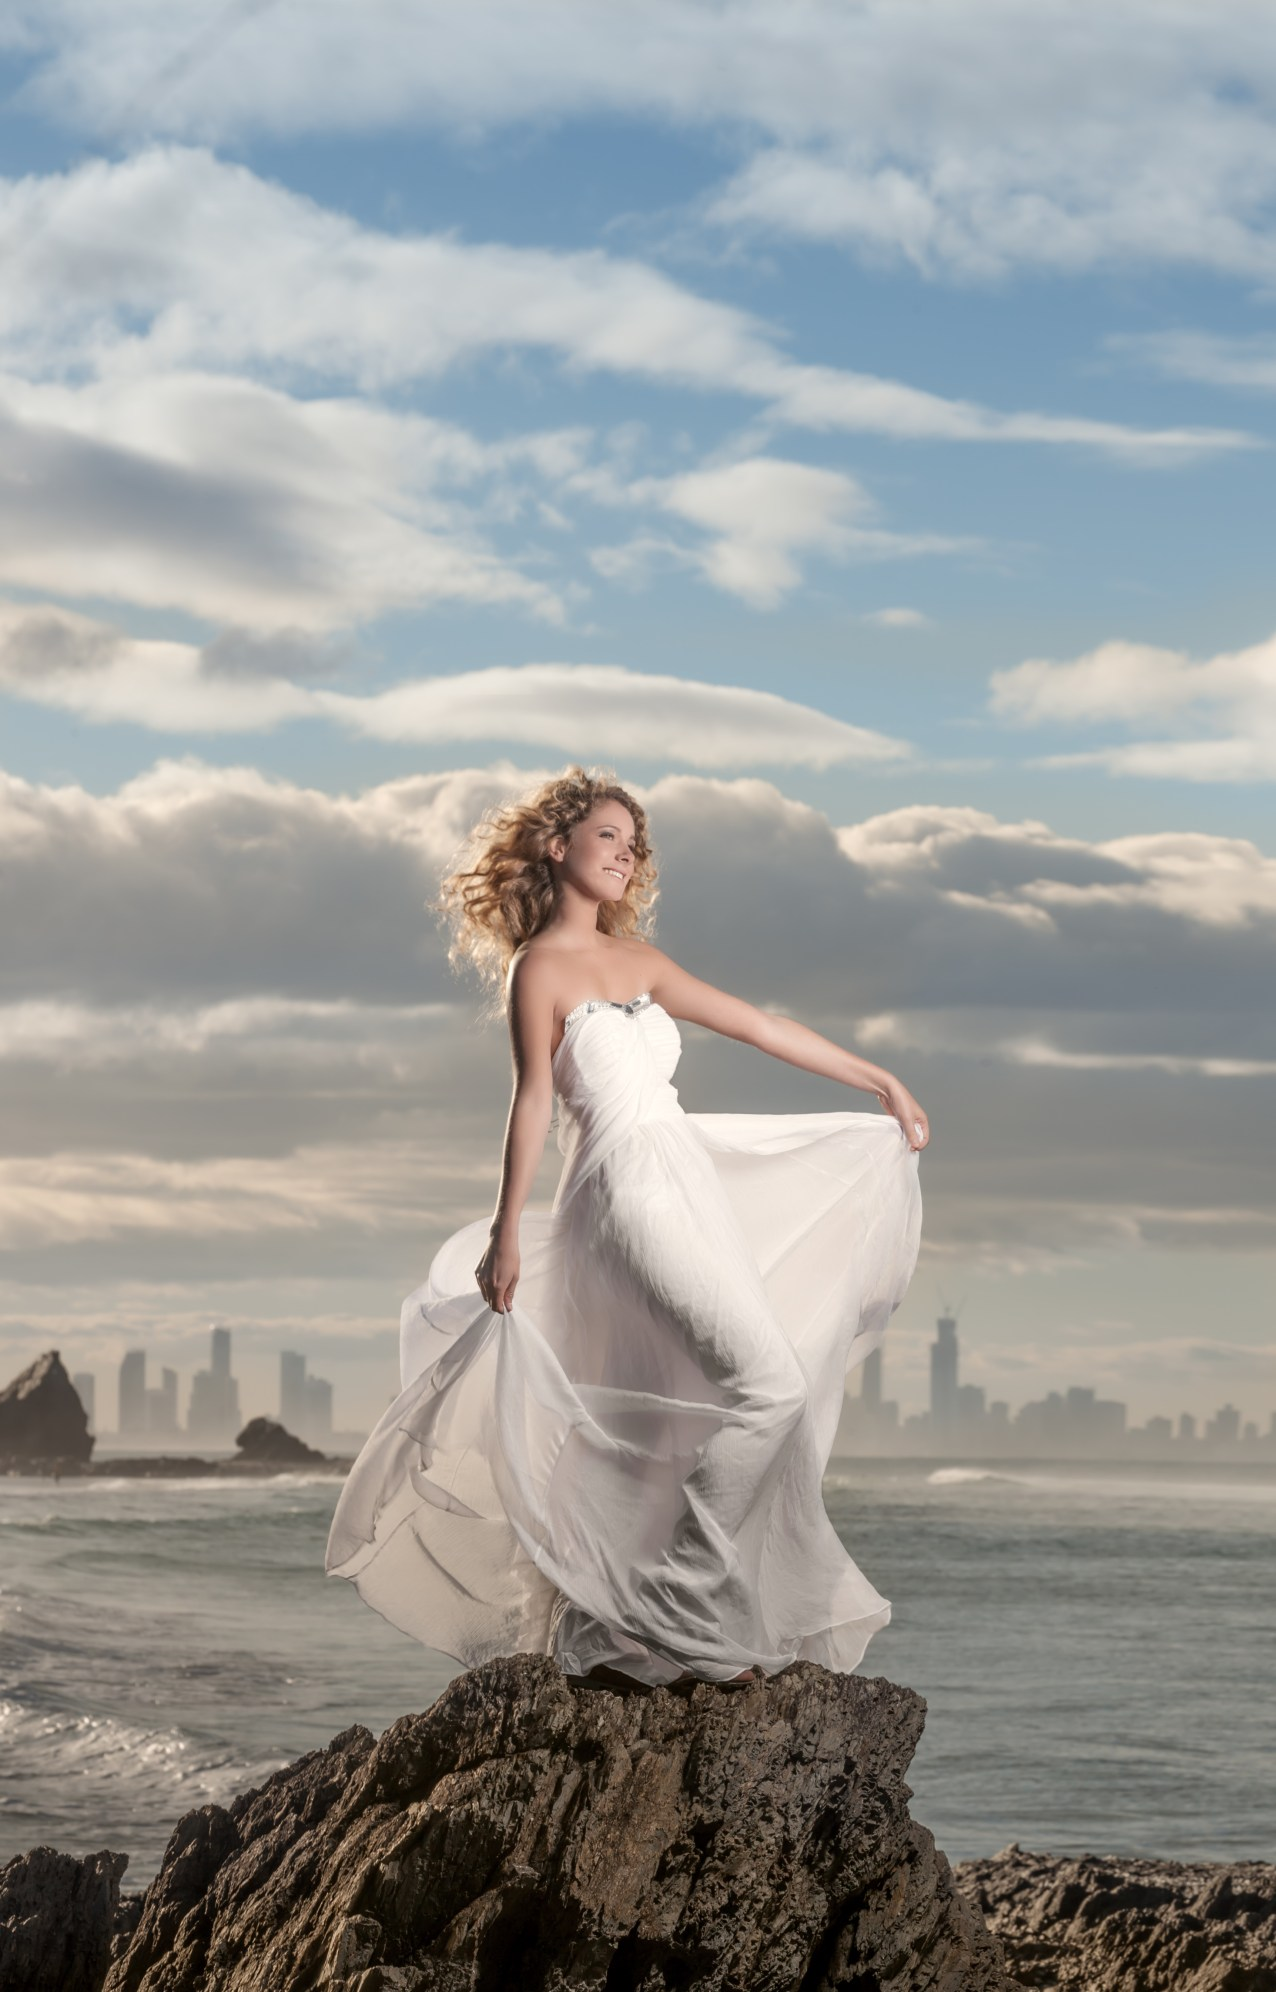 Wedding portraits that stand out